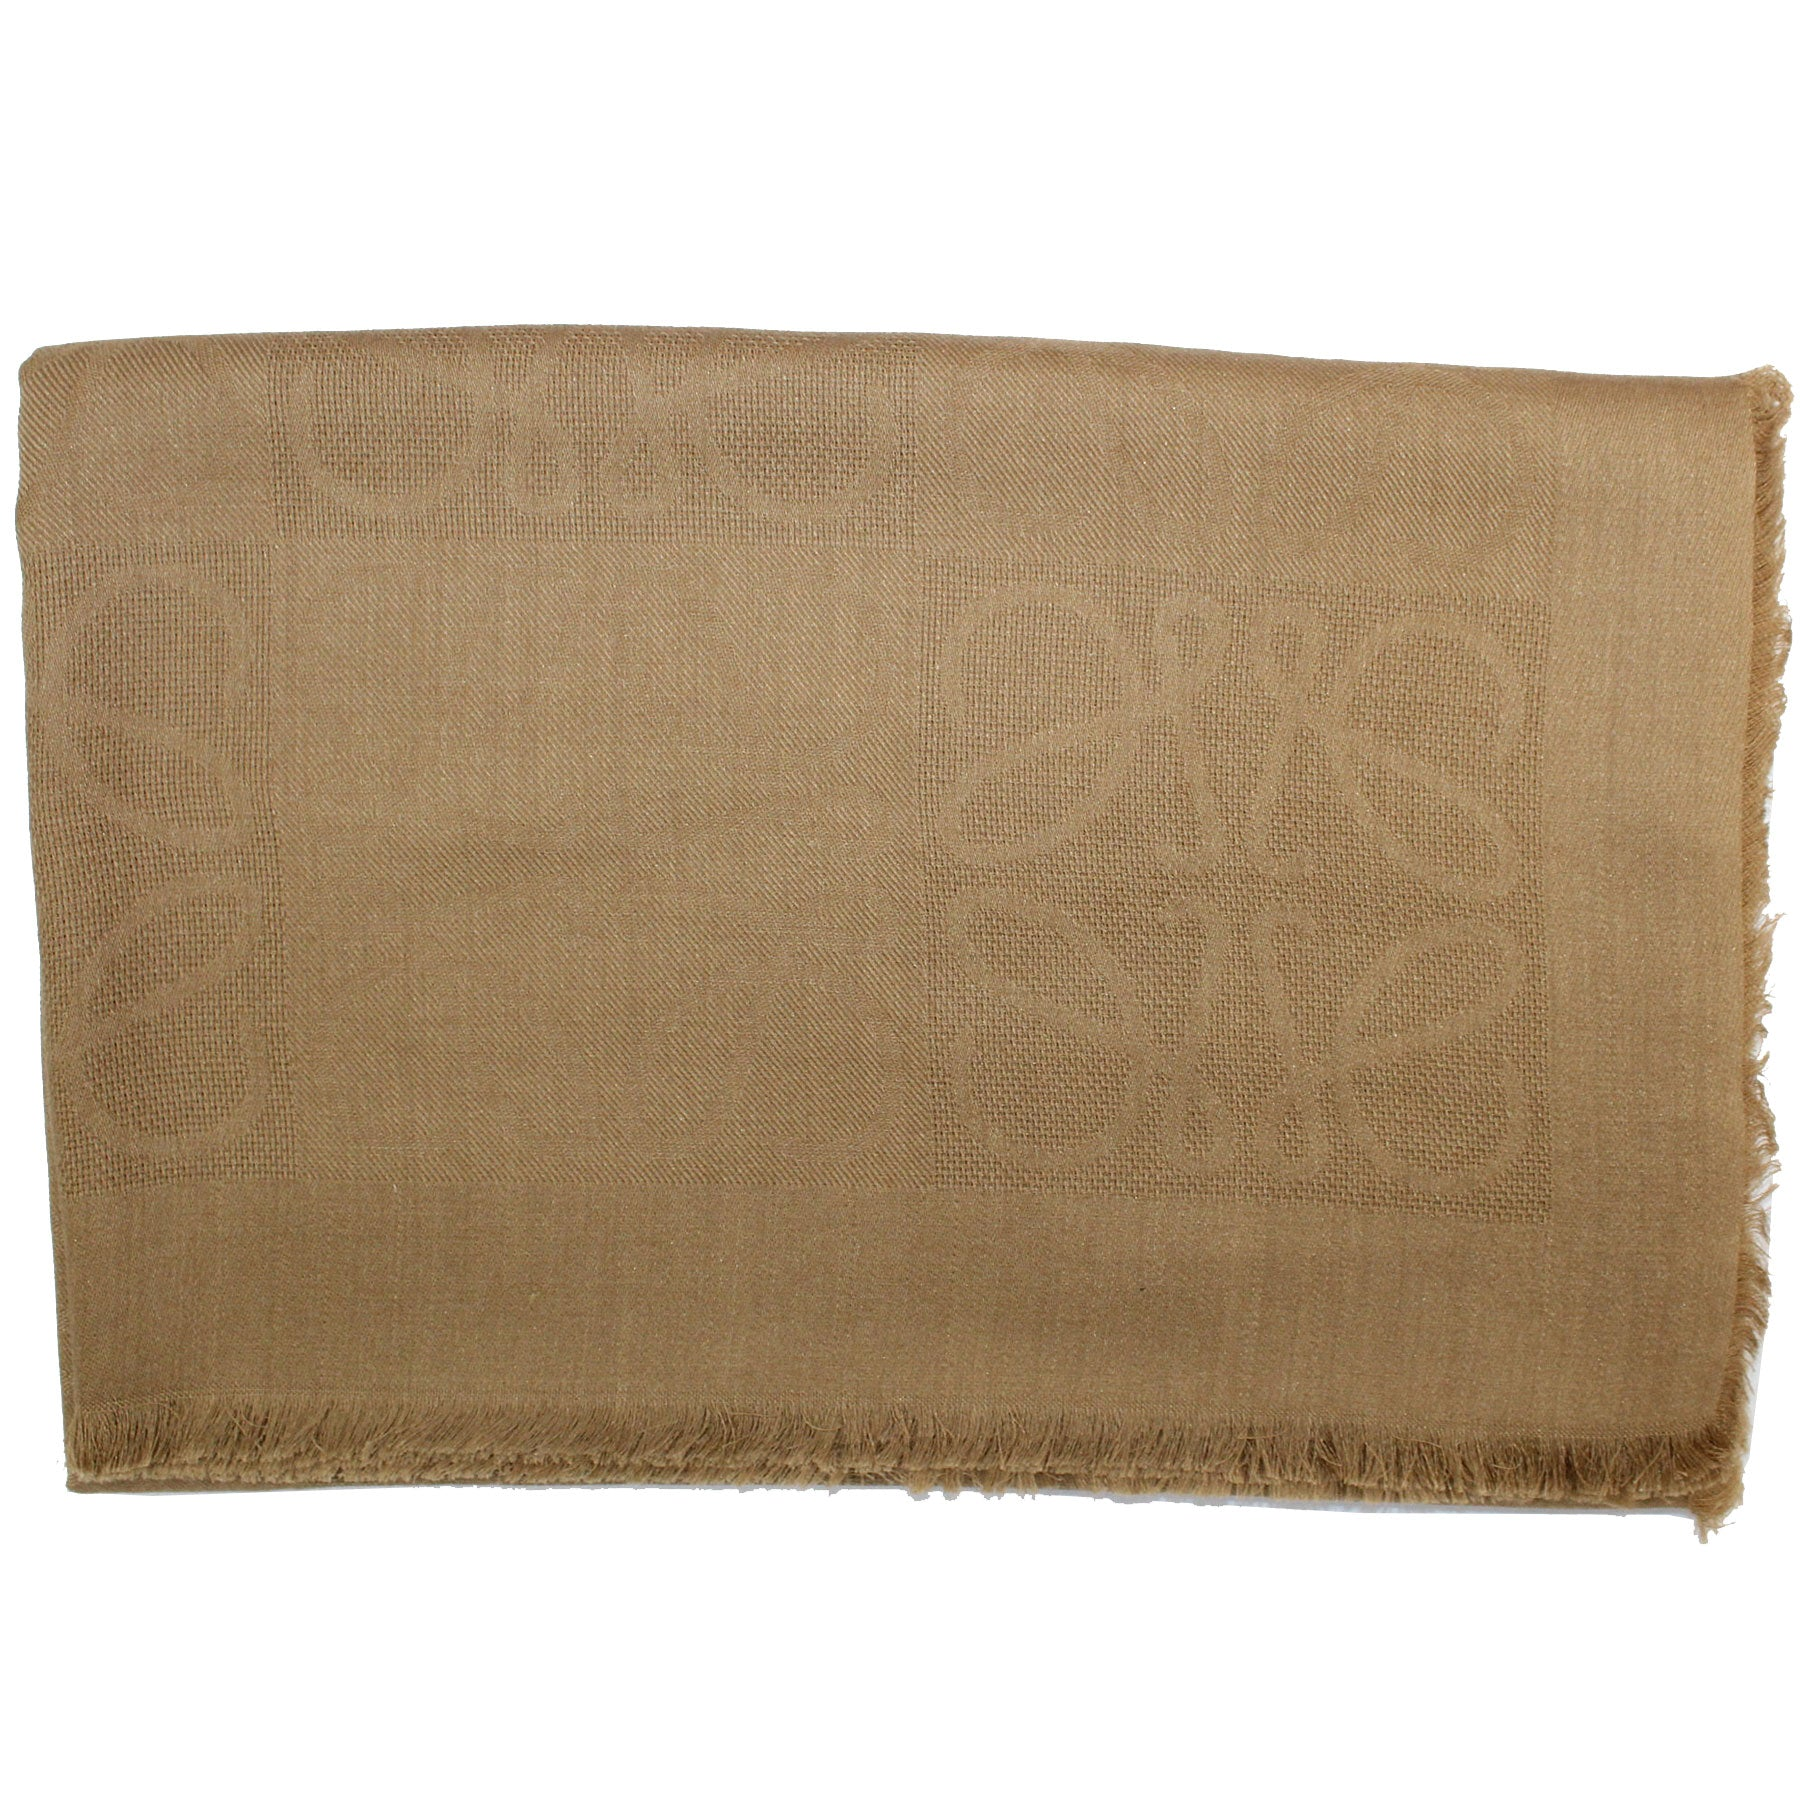 Loewe Silk Scarf Taupe Anagram Design - Large Square Scarf